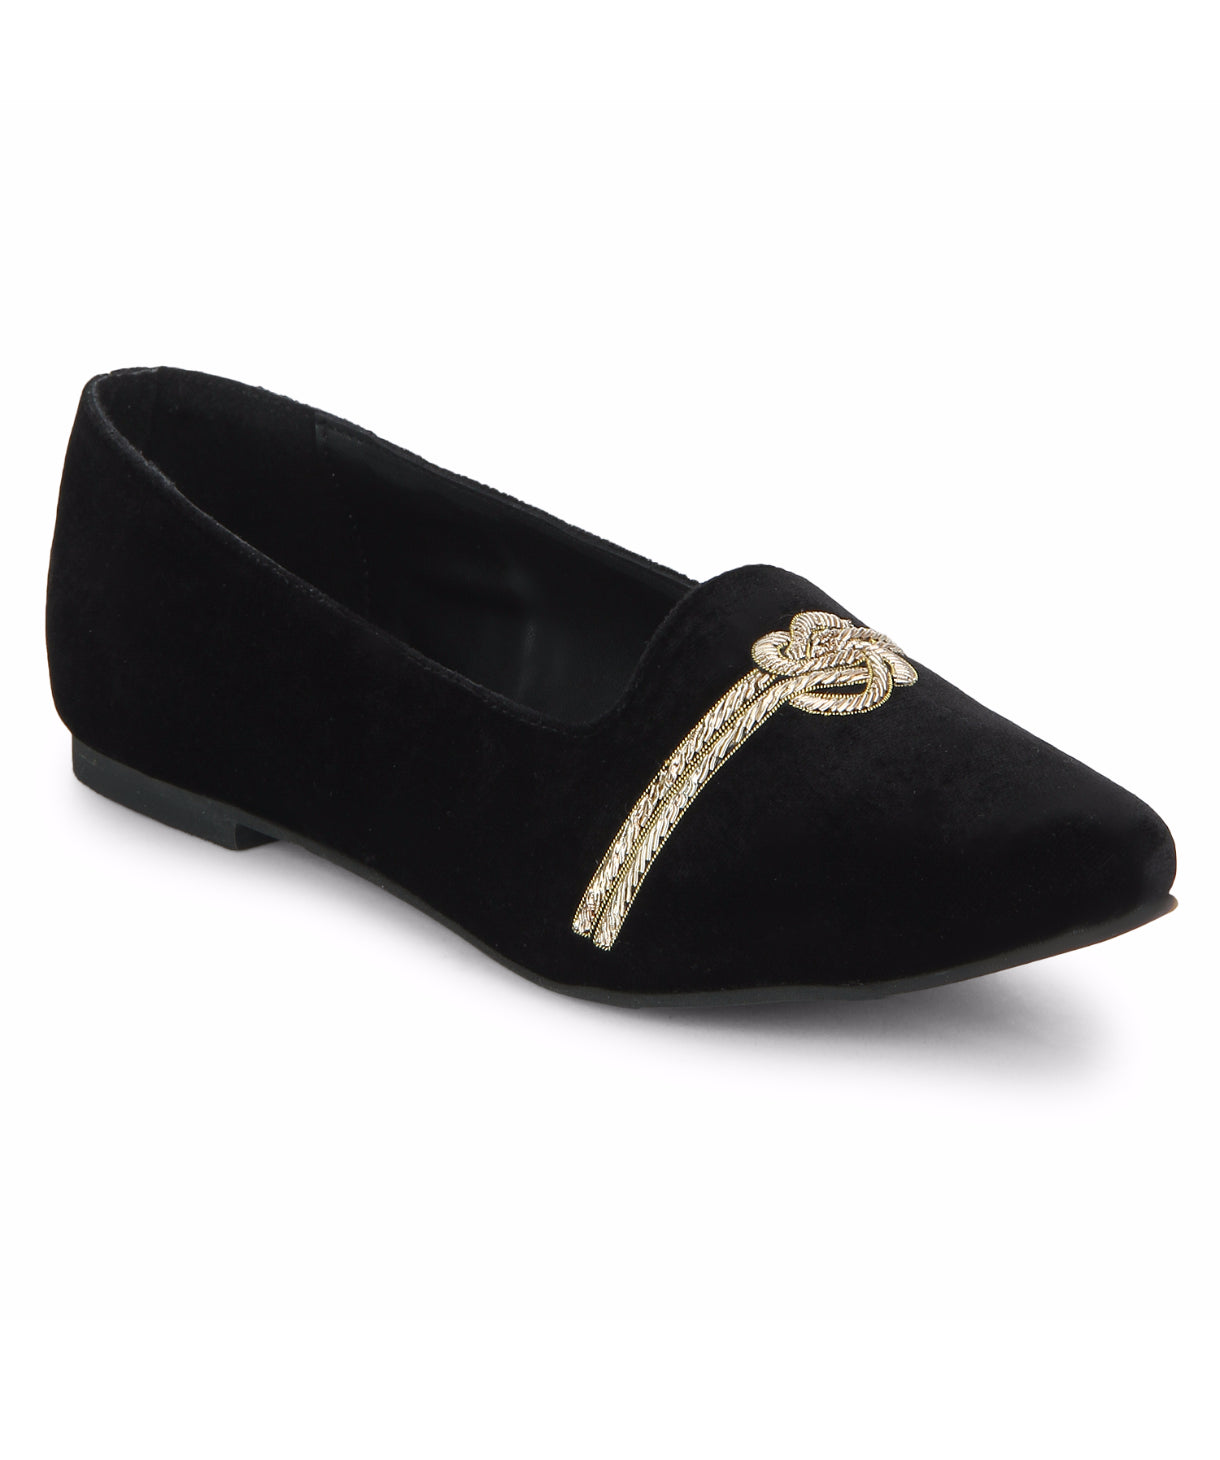 Uptownie X Bootico-Black Love Knot Zardosi Loafers - Uptownie